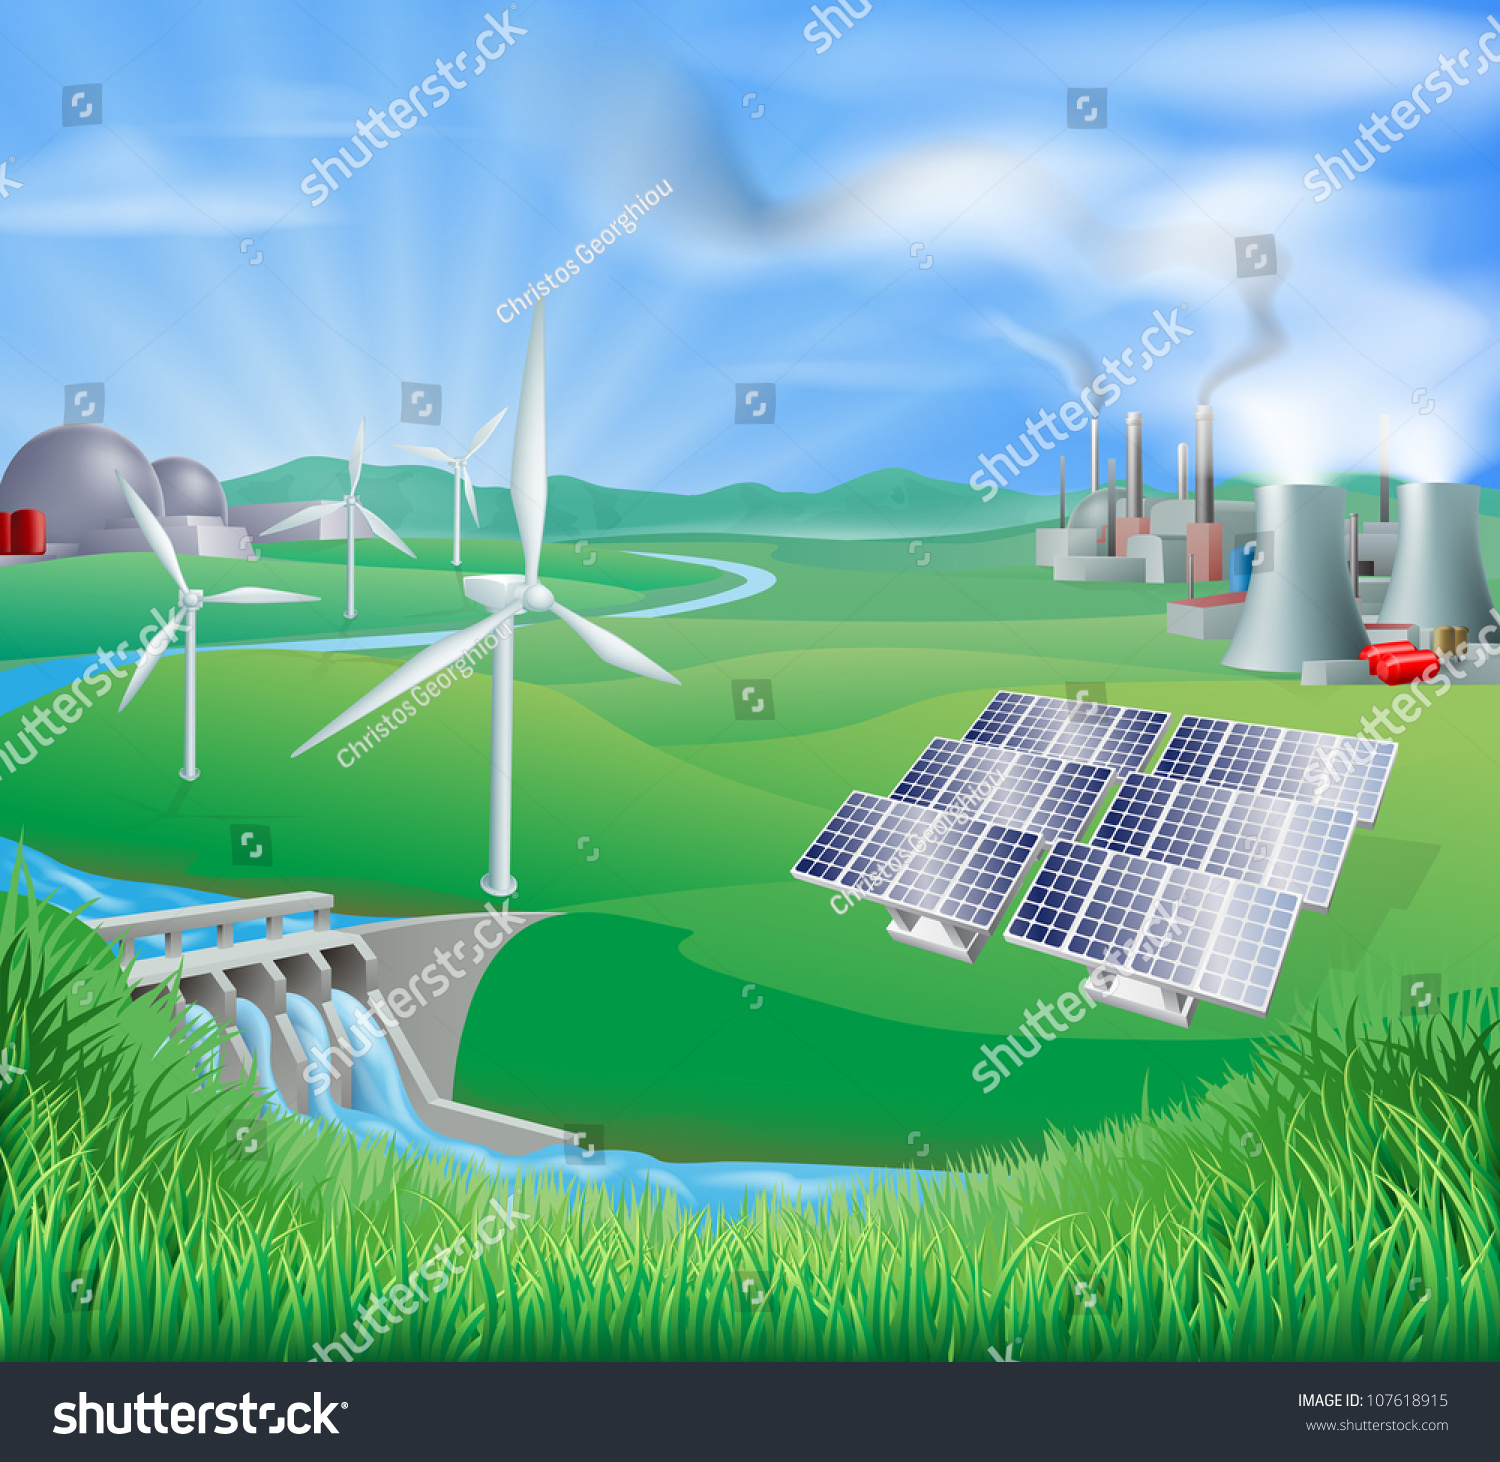 essays on renewable energy This article explains the advances in renewable energy such as wind energy, solar energy as well as the future of non-renewable energy such as nuclear energy and natural gas exploration.